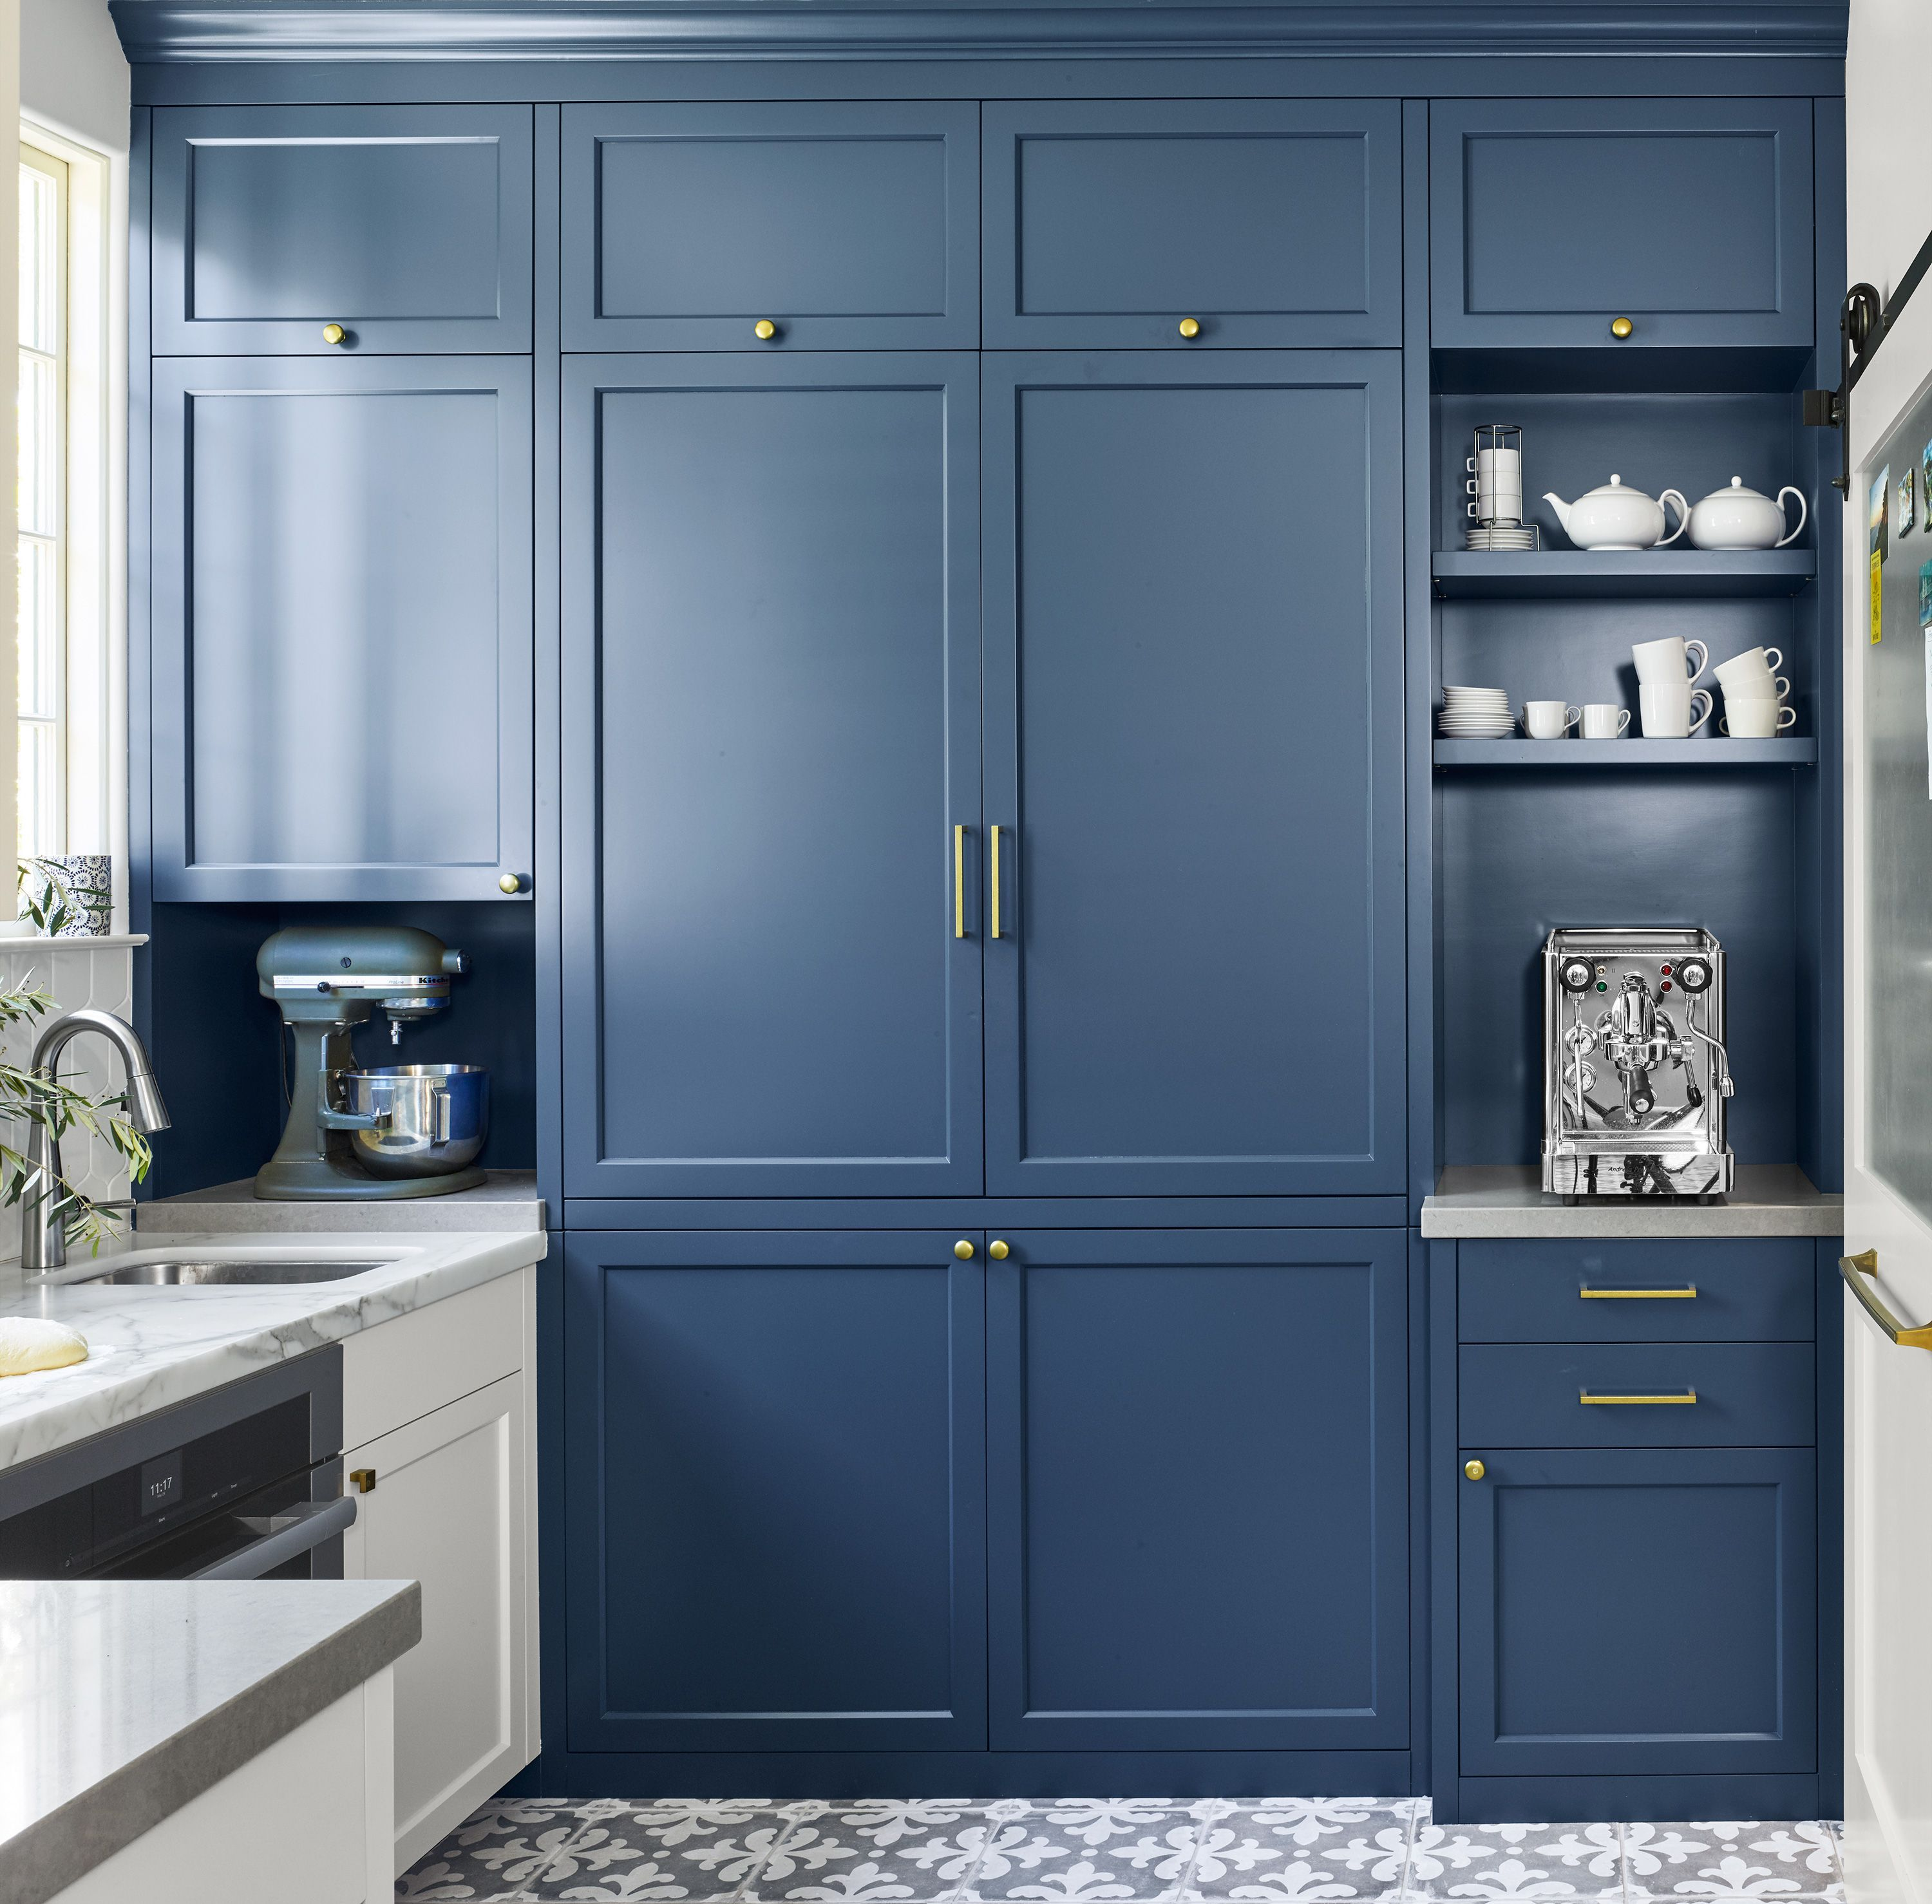 Floor To Ceiling Cabinets Kitchen Wall Cabinets Tall Kitchen Cabinets Kitchen C In 2020 Tall Kitchen Cabinets Floor To Ceiling Cabinets Corner Kitchen Cabinet